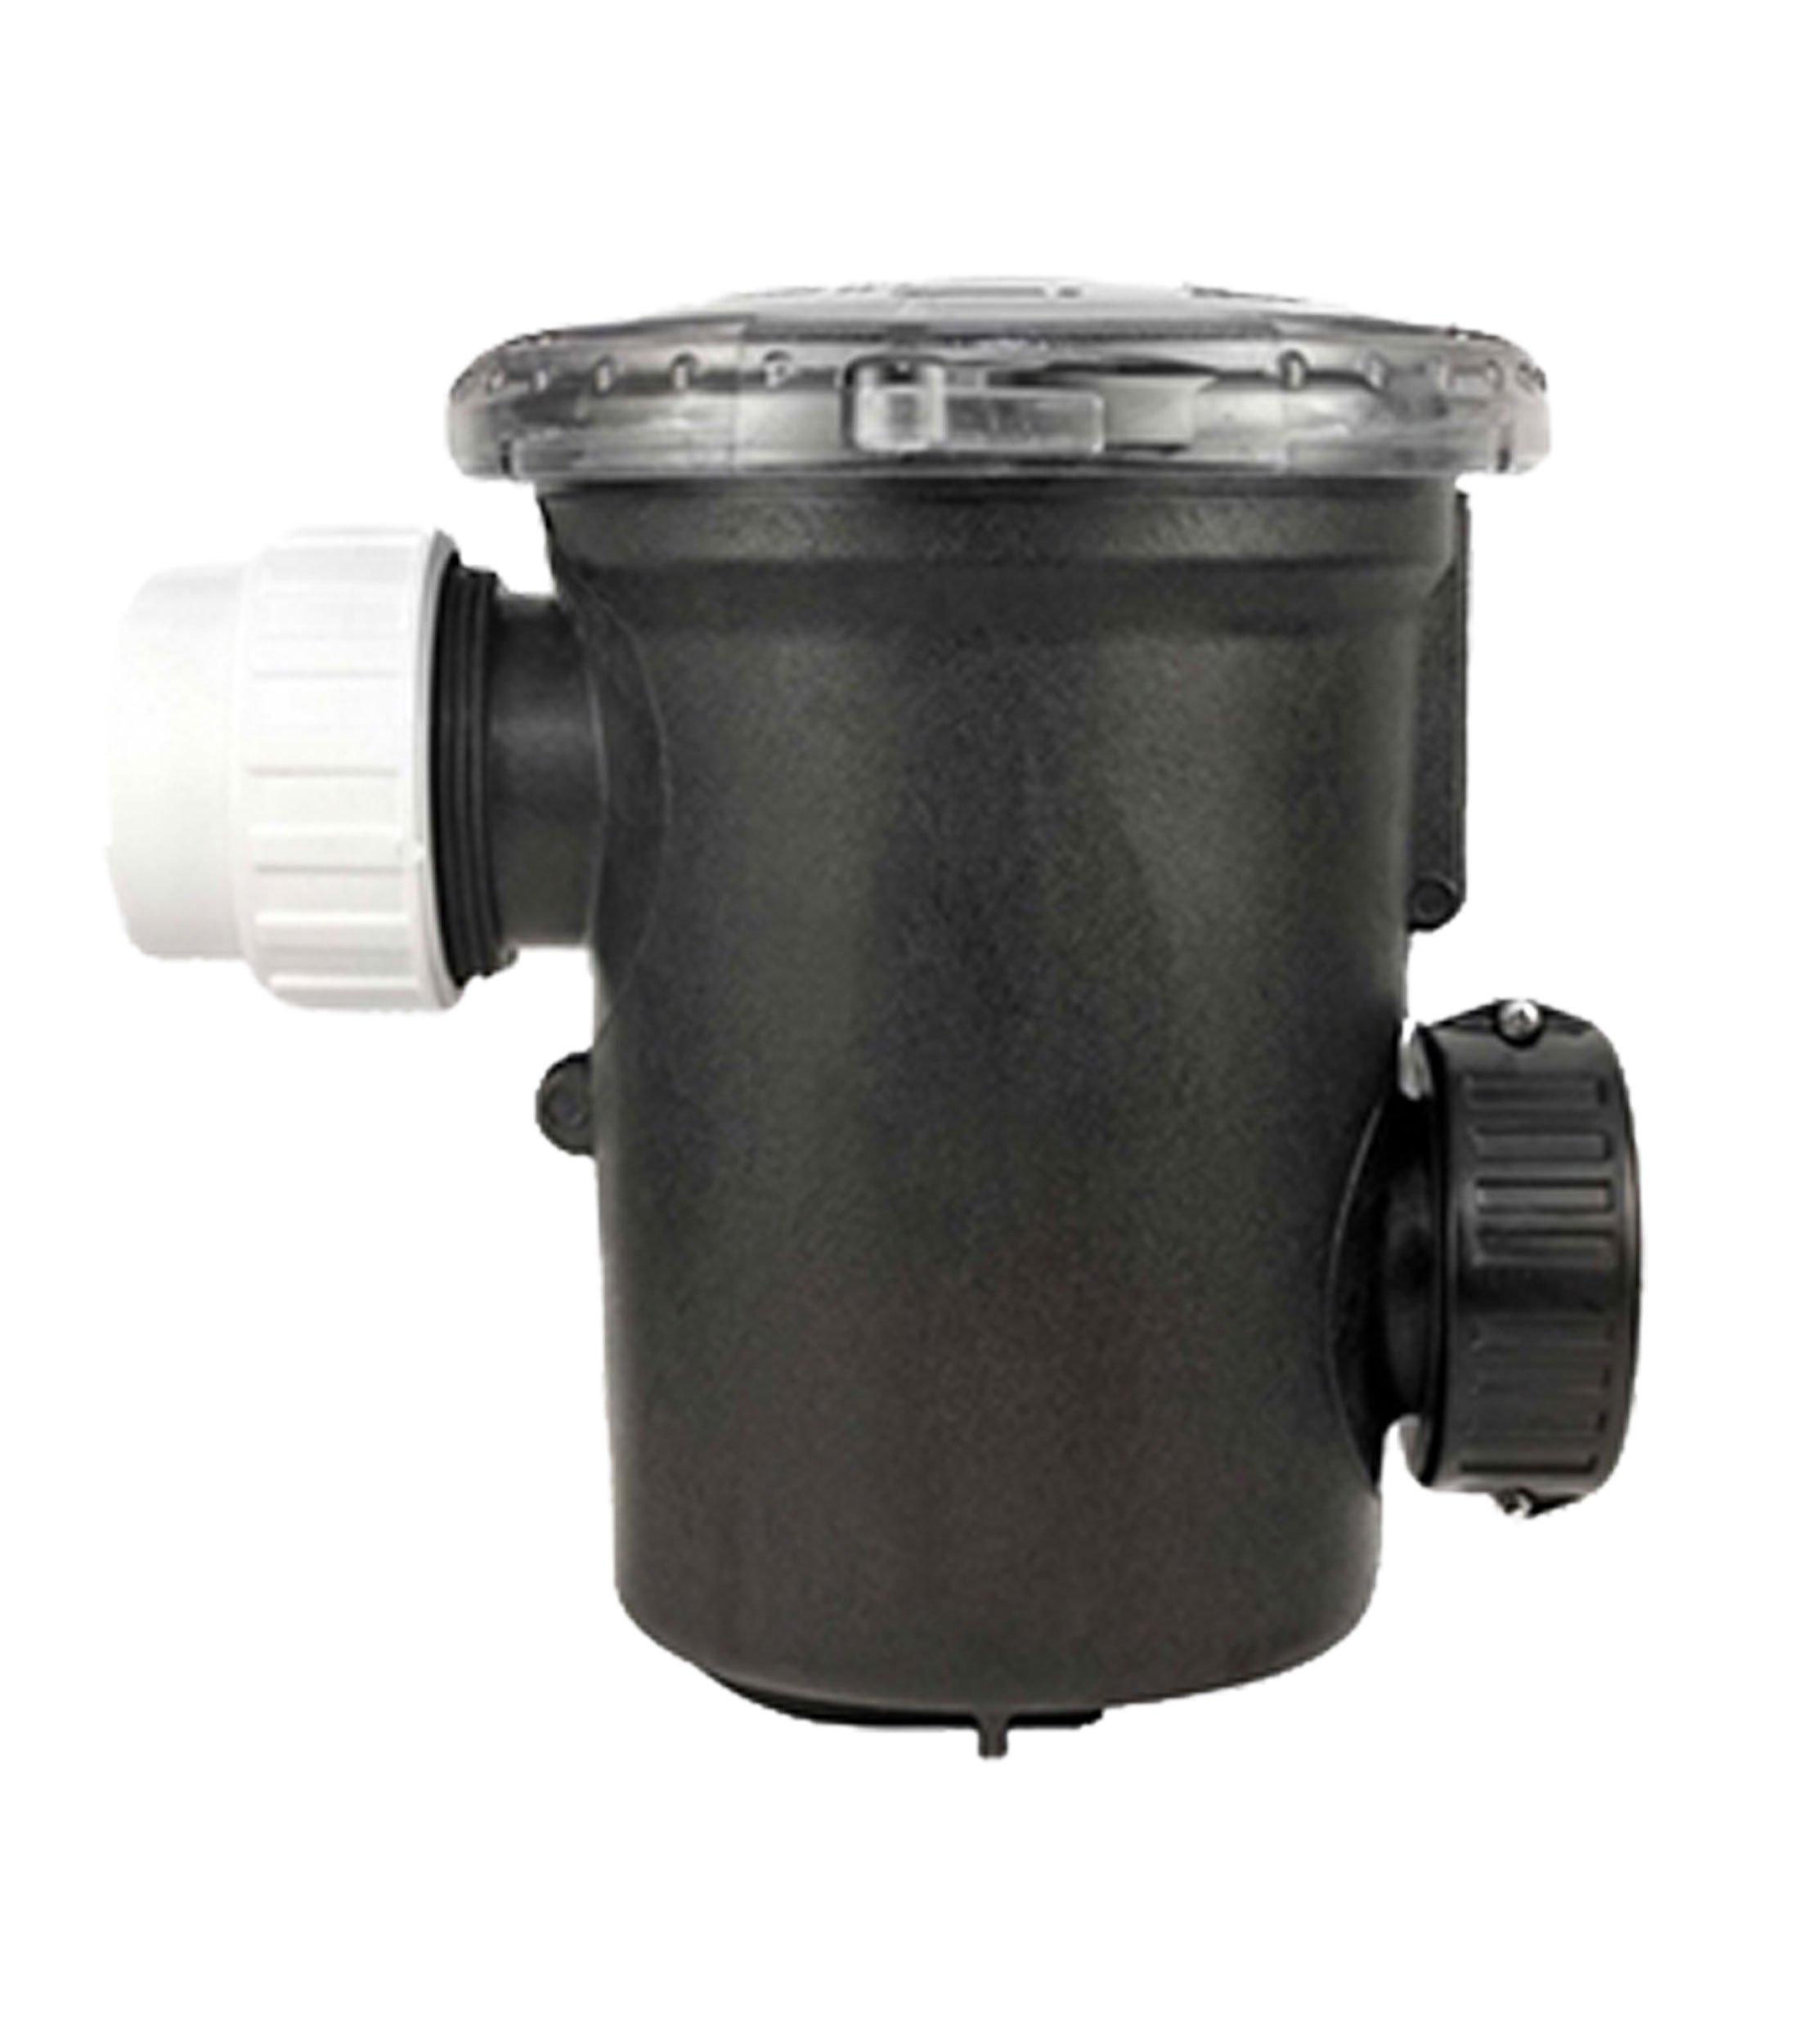 90 Cubic Inch Priming Pot 1.5X1.5 Designed Specifically for the Water Gardening Industry (1.5'' 90 CUBIC INCH)